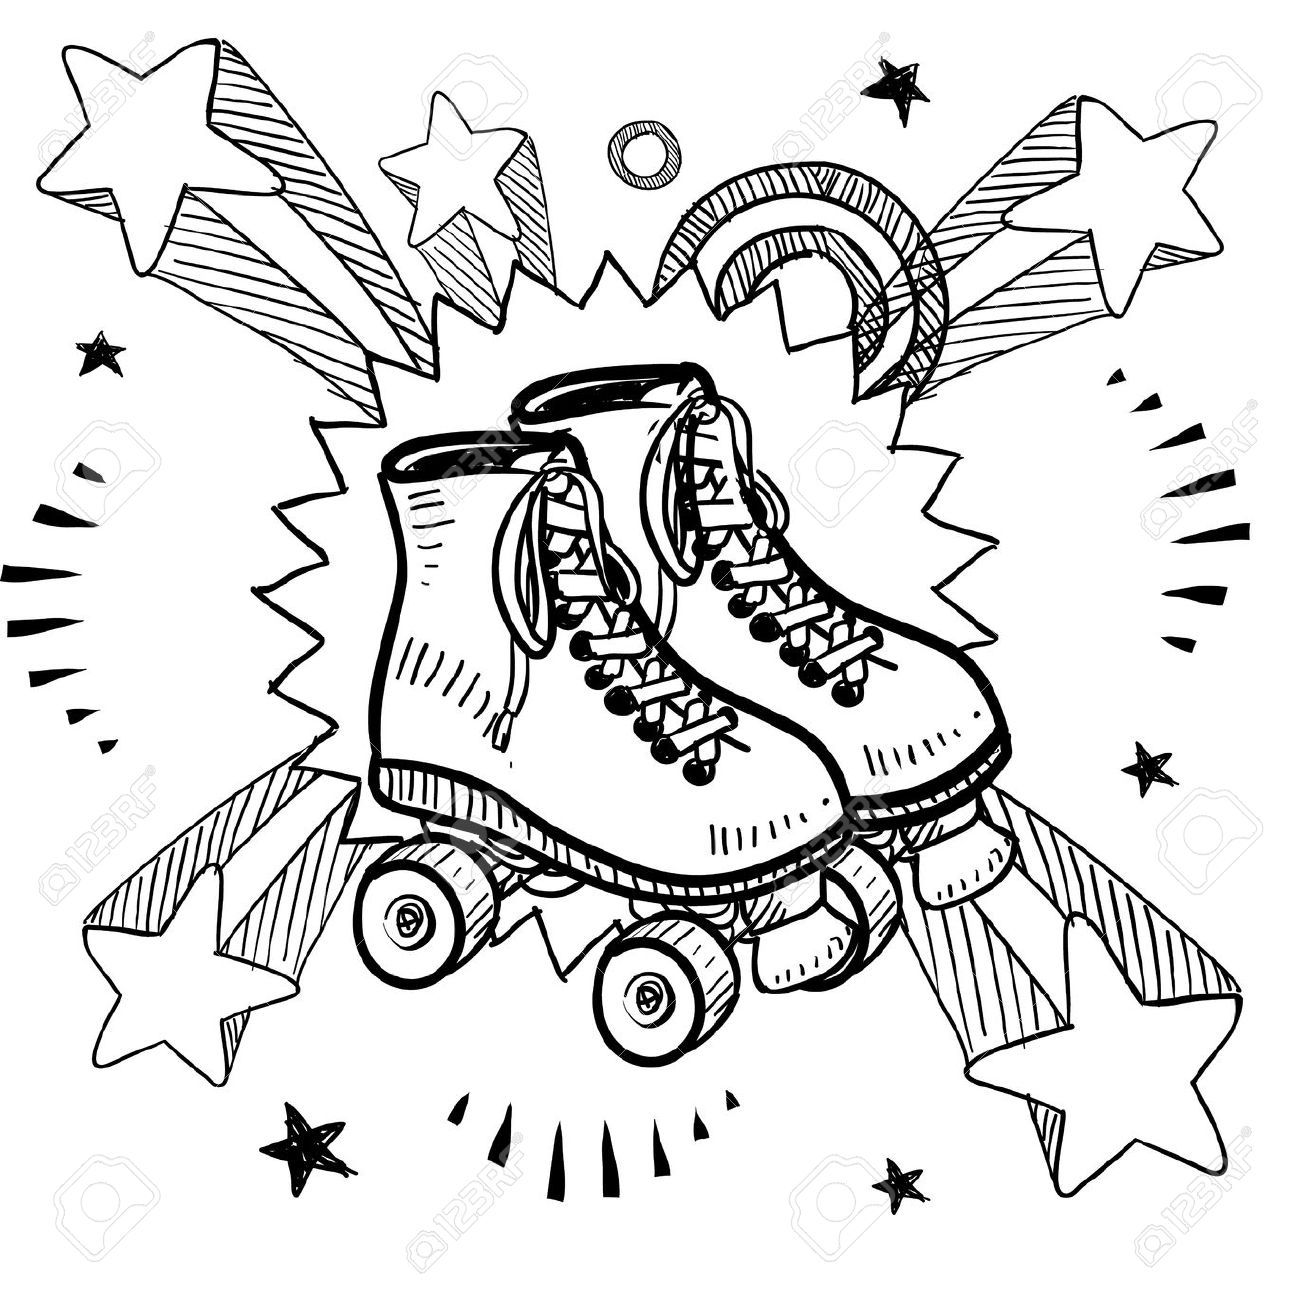 Free roller skating coloring pages - Skate Coloring Page